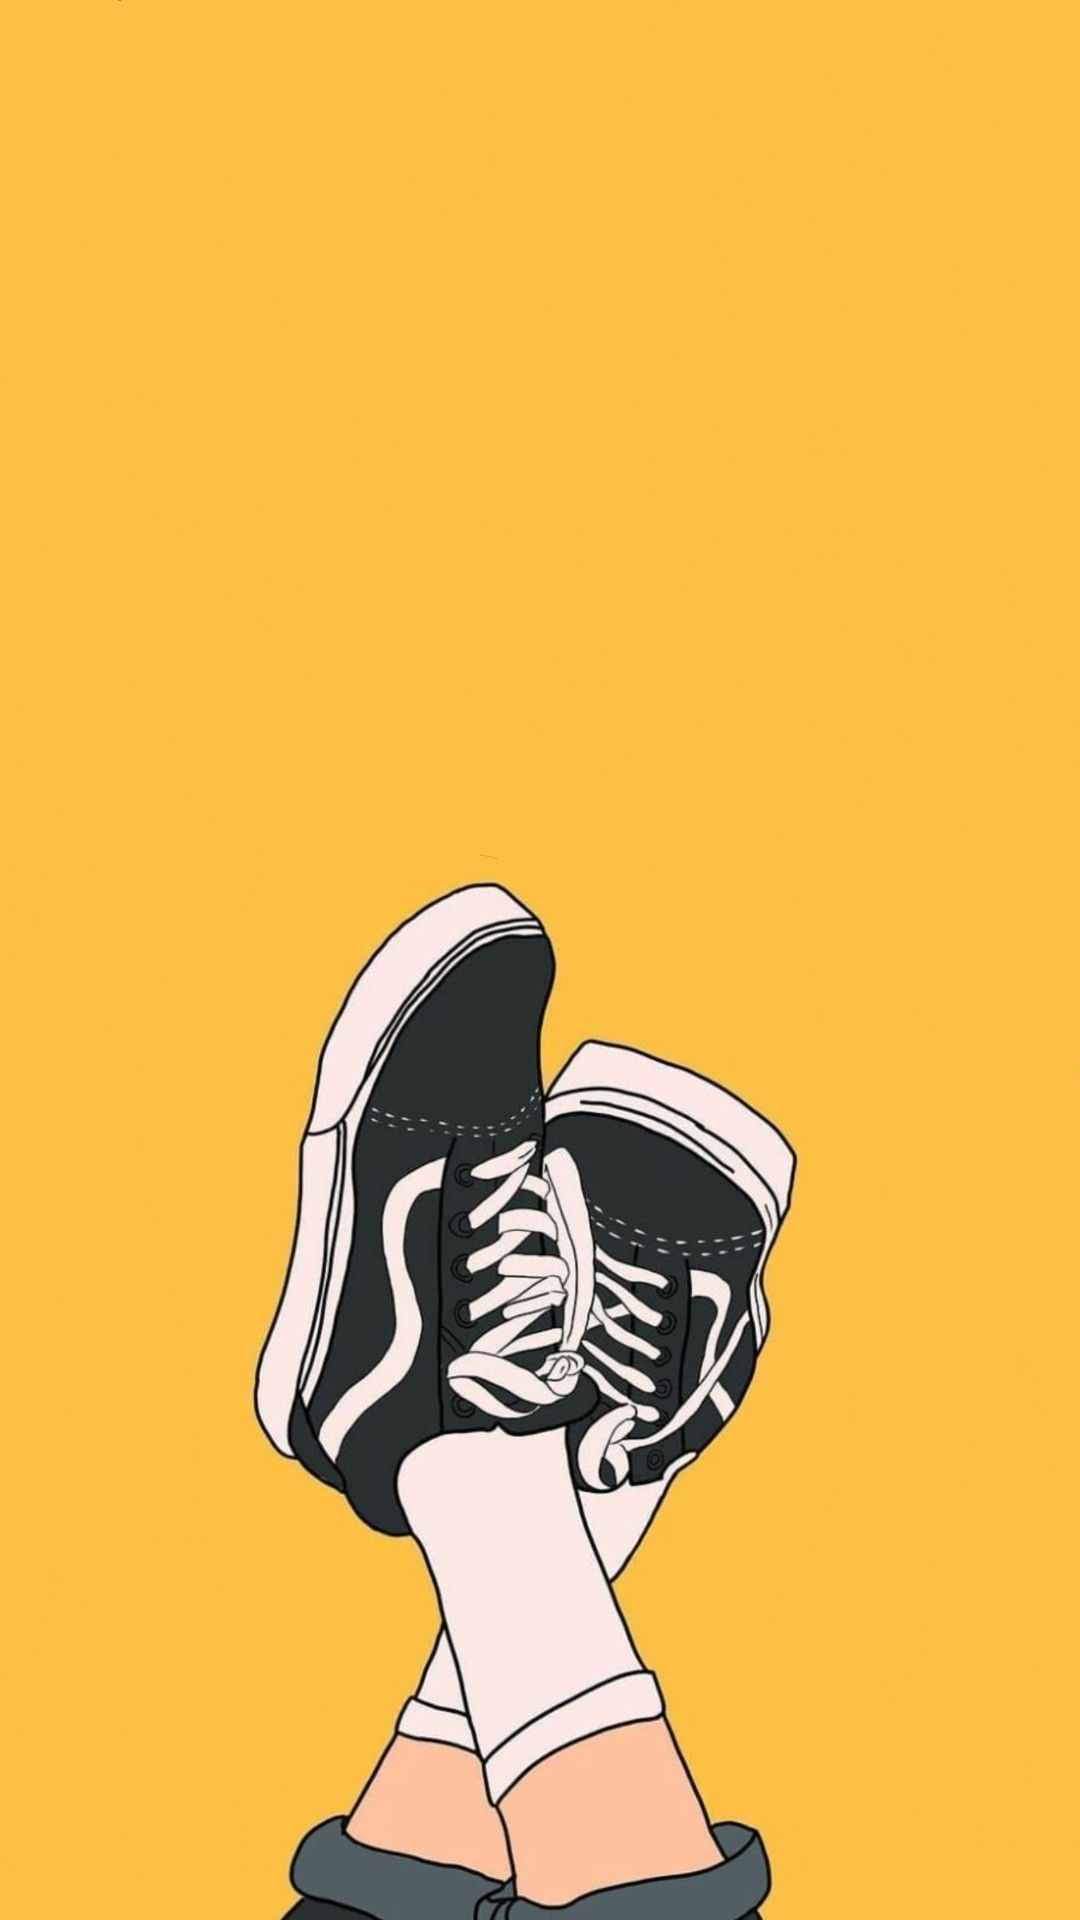 Get Cool Vans Wallpaper For Iphone This Month By Uploaded By User Cool Vans Wallpapers Cool Vans Wallpapers Iphone Wallpaper Images Swag Wallpaper